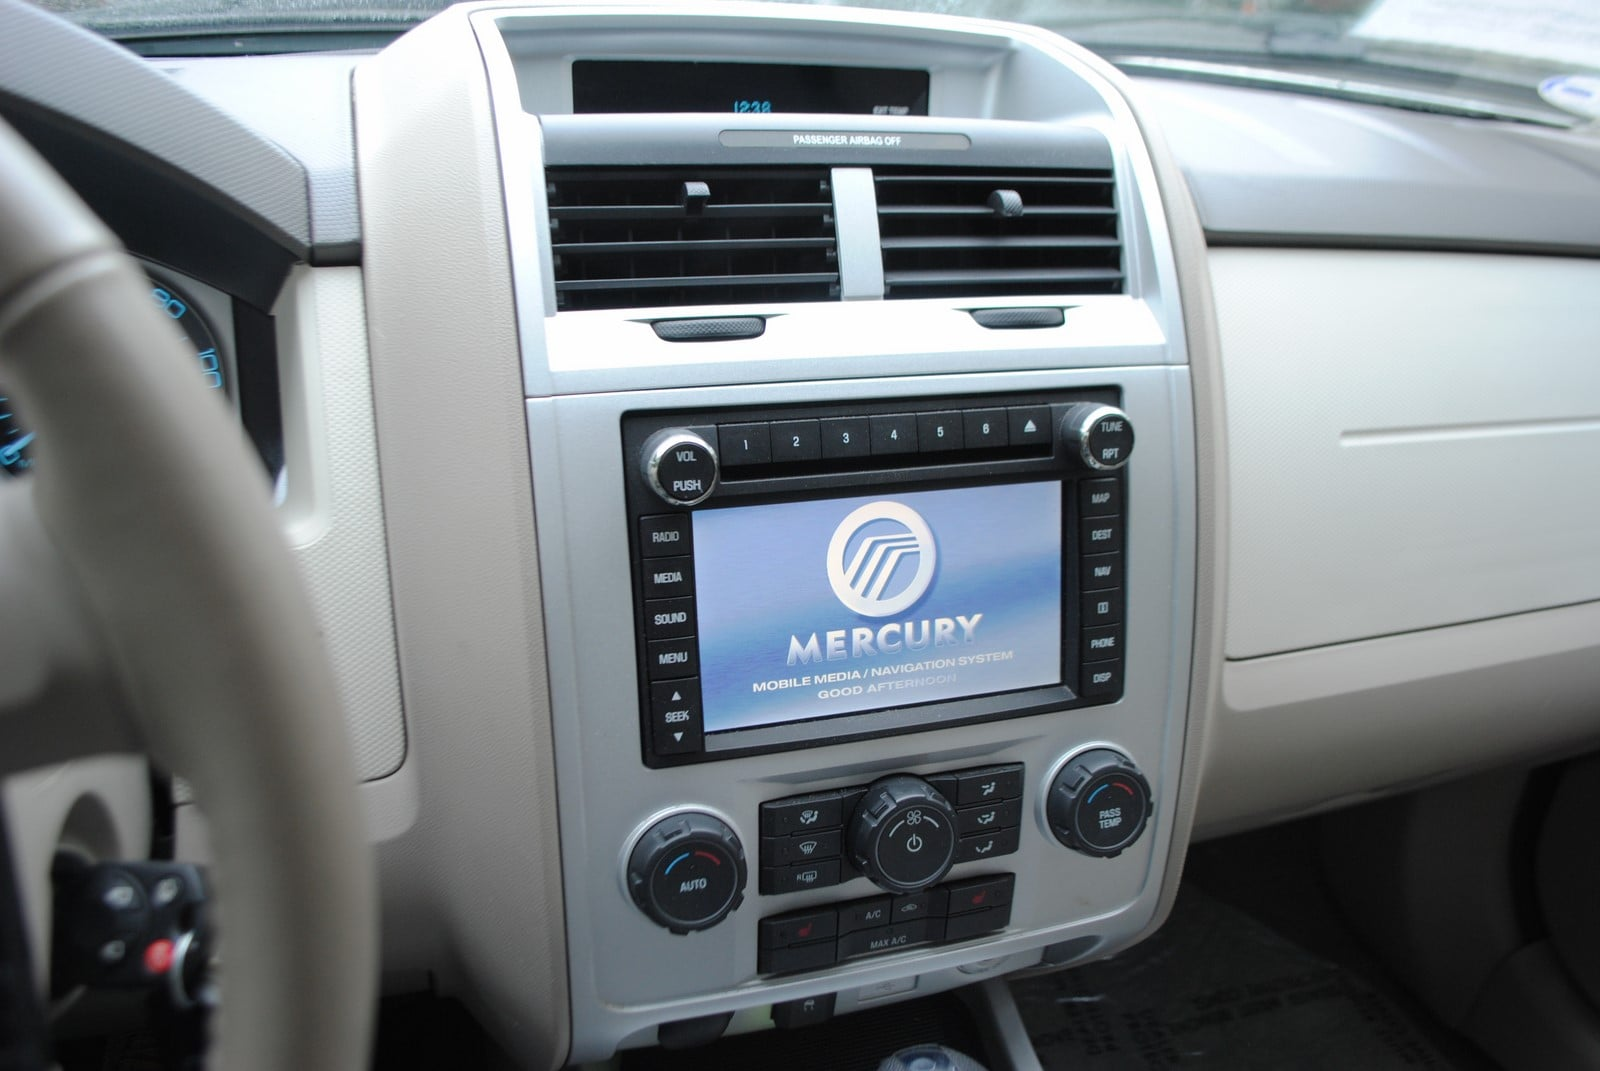 Used 2010 Mercury Mariner For Sale at Ramsey Corp  | VIN